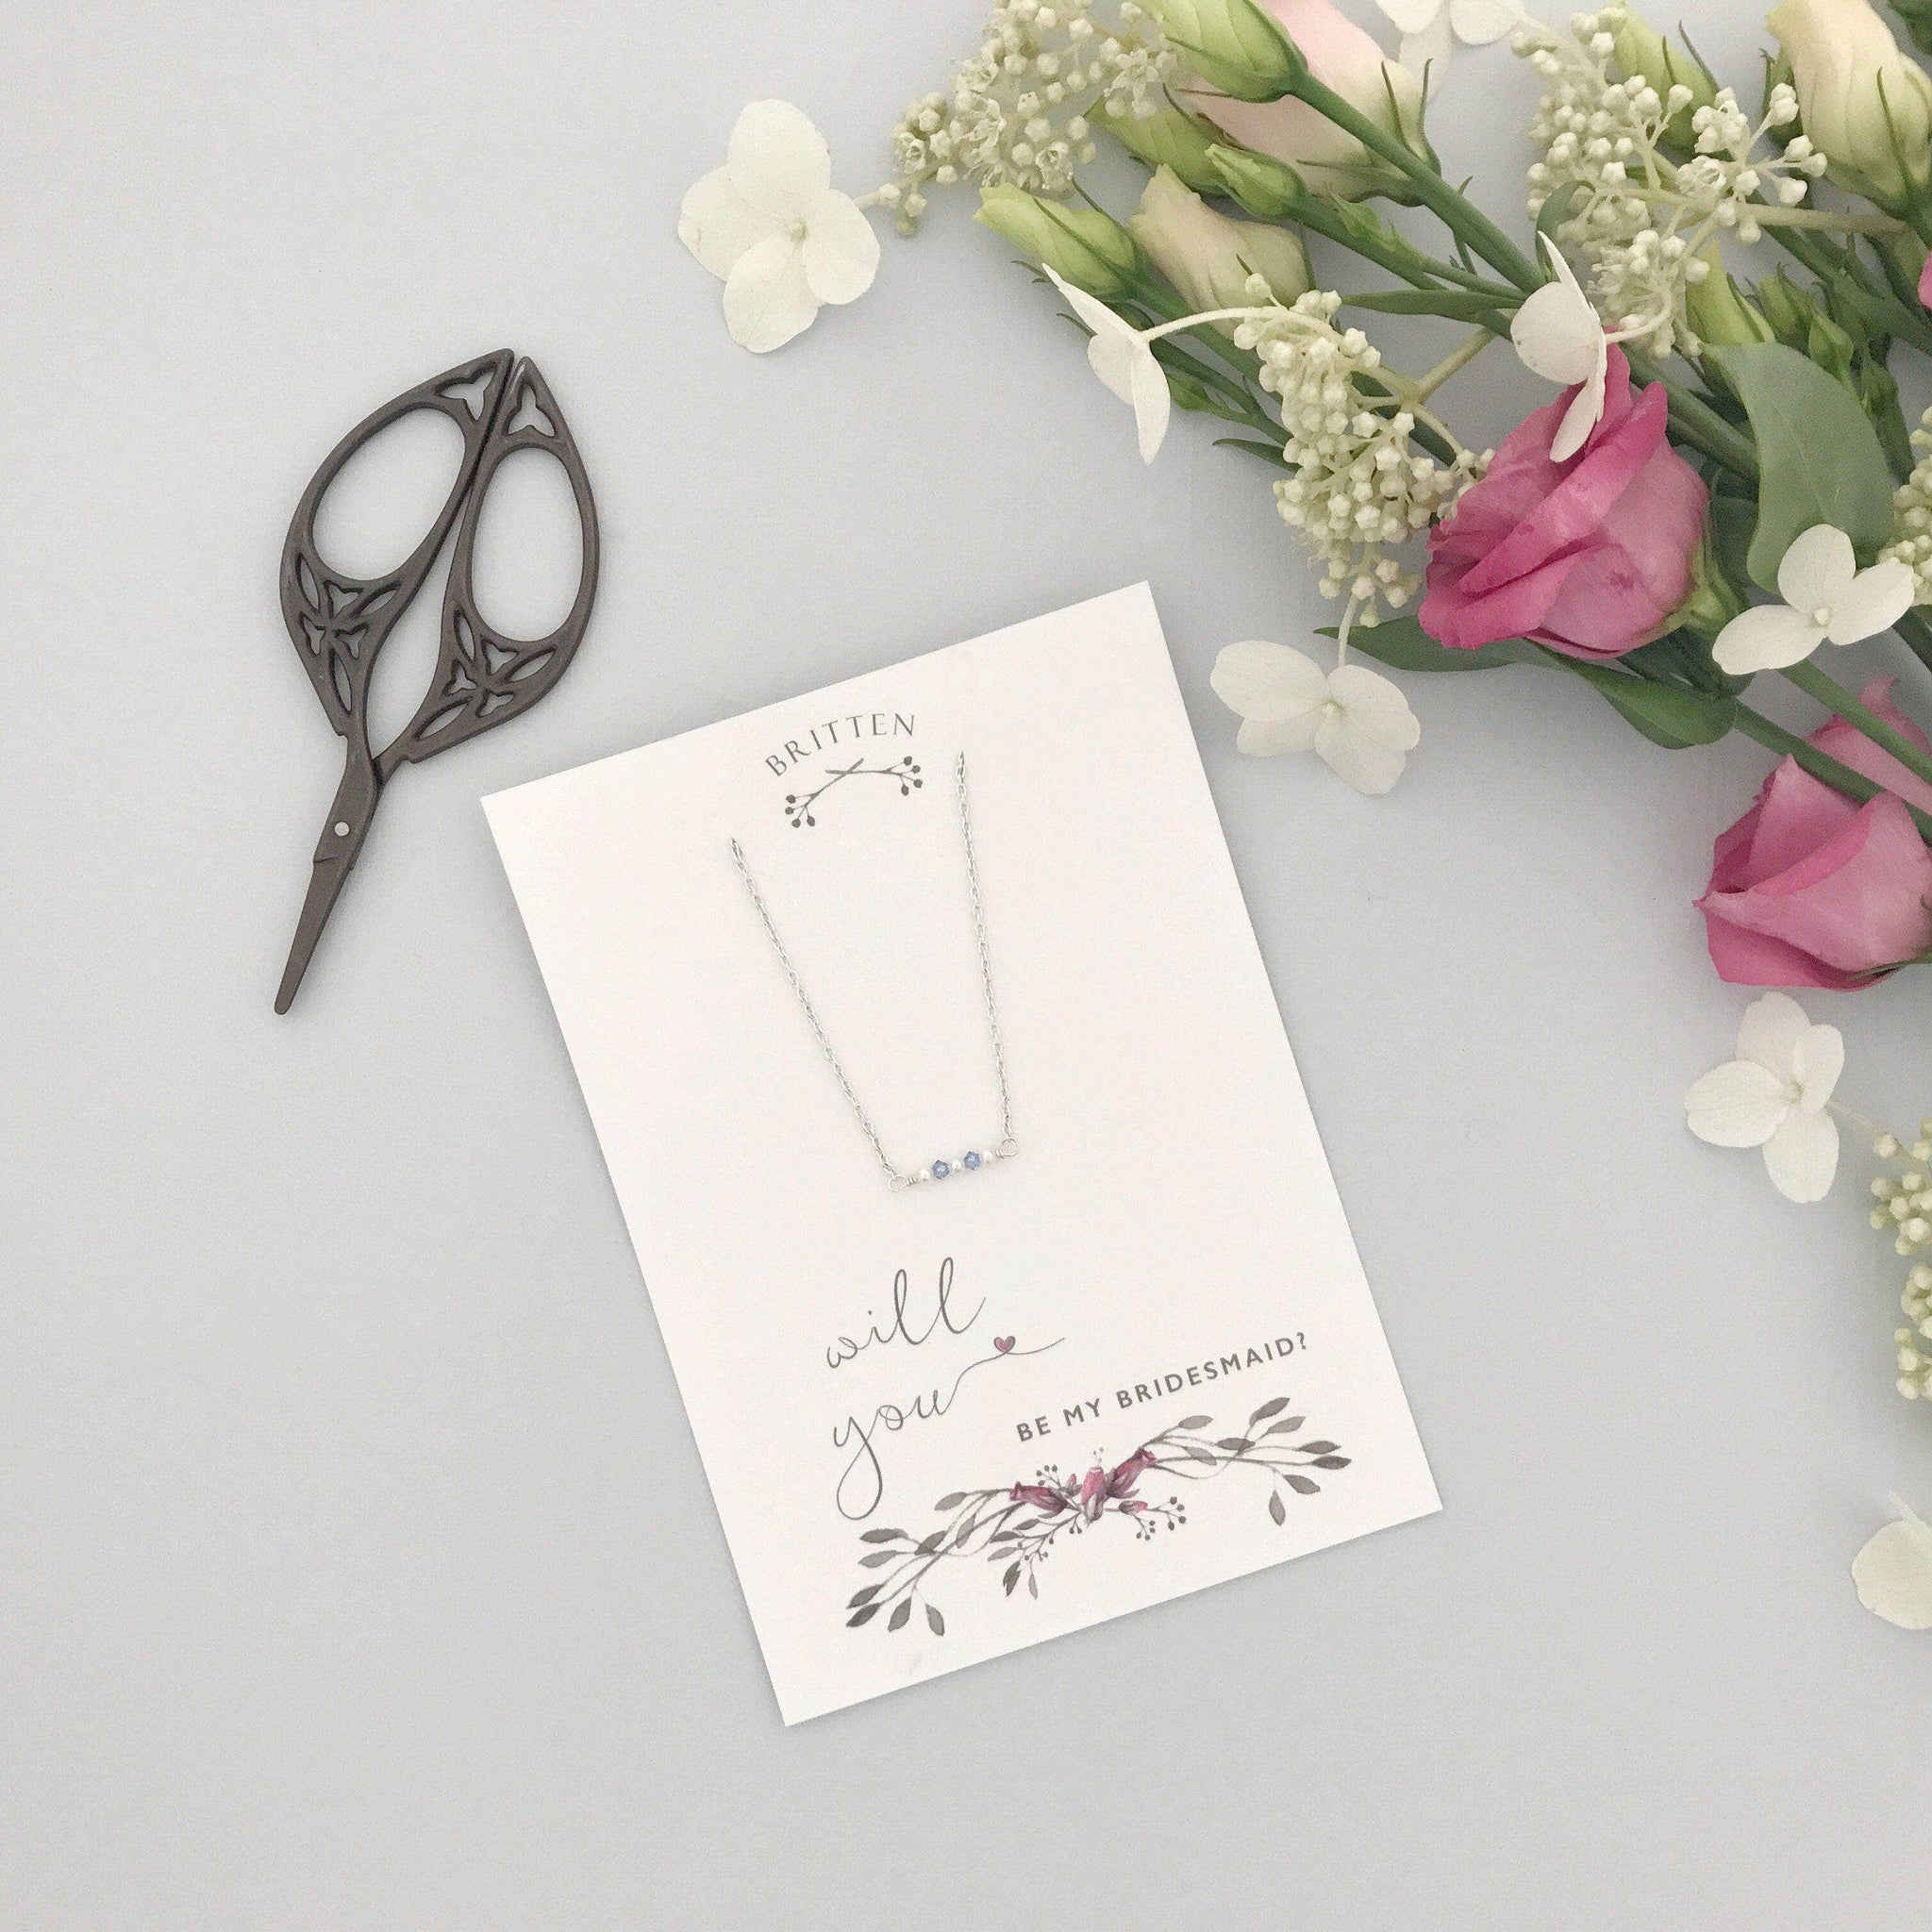 Will you be my bridesmaid gift necklace - 'Mollie' in silver